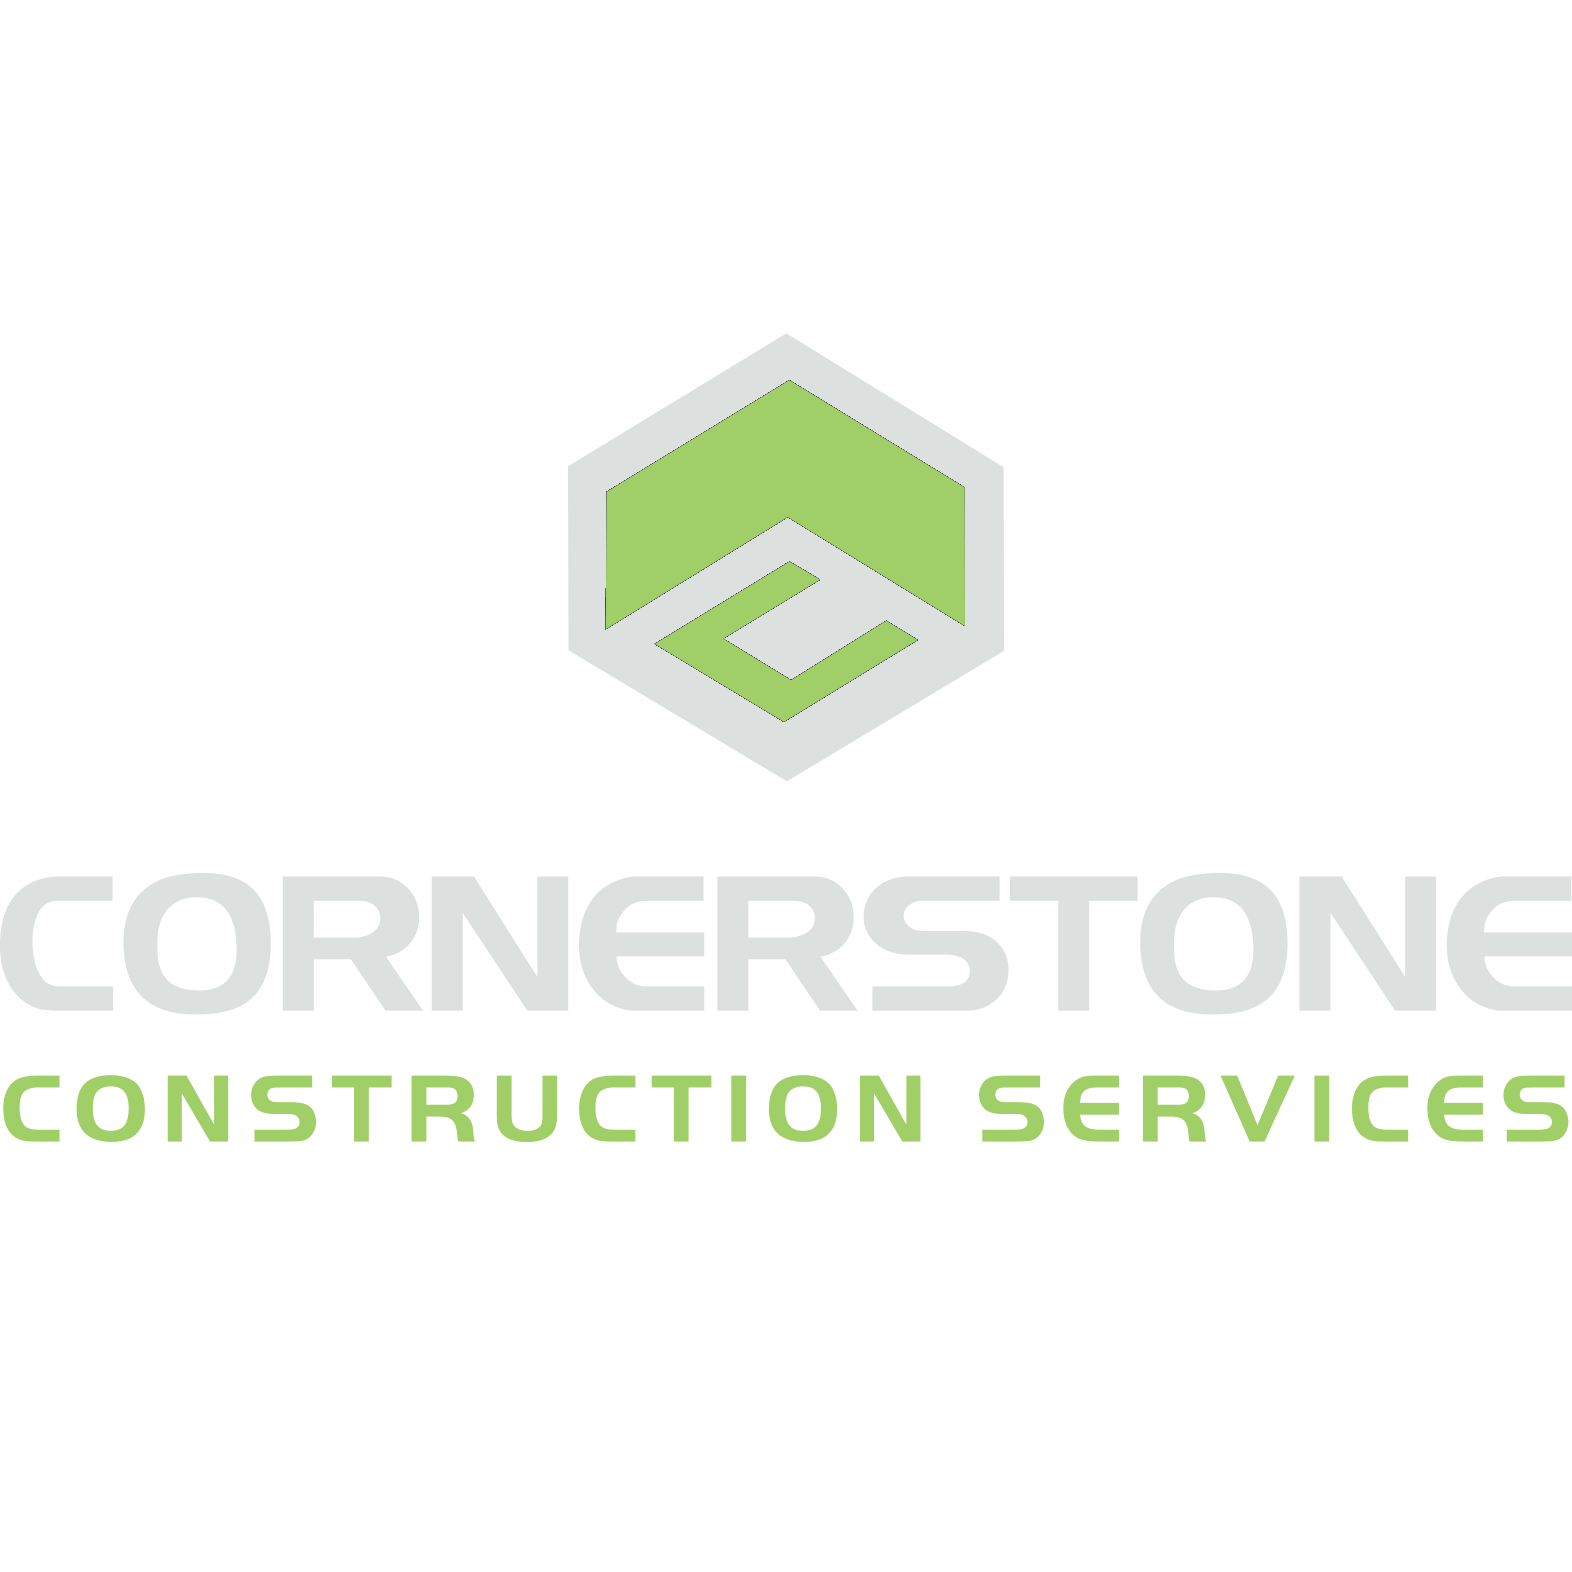 Cornerstone Construction Services, Inc. Logo